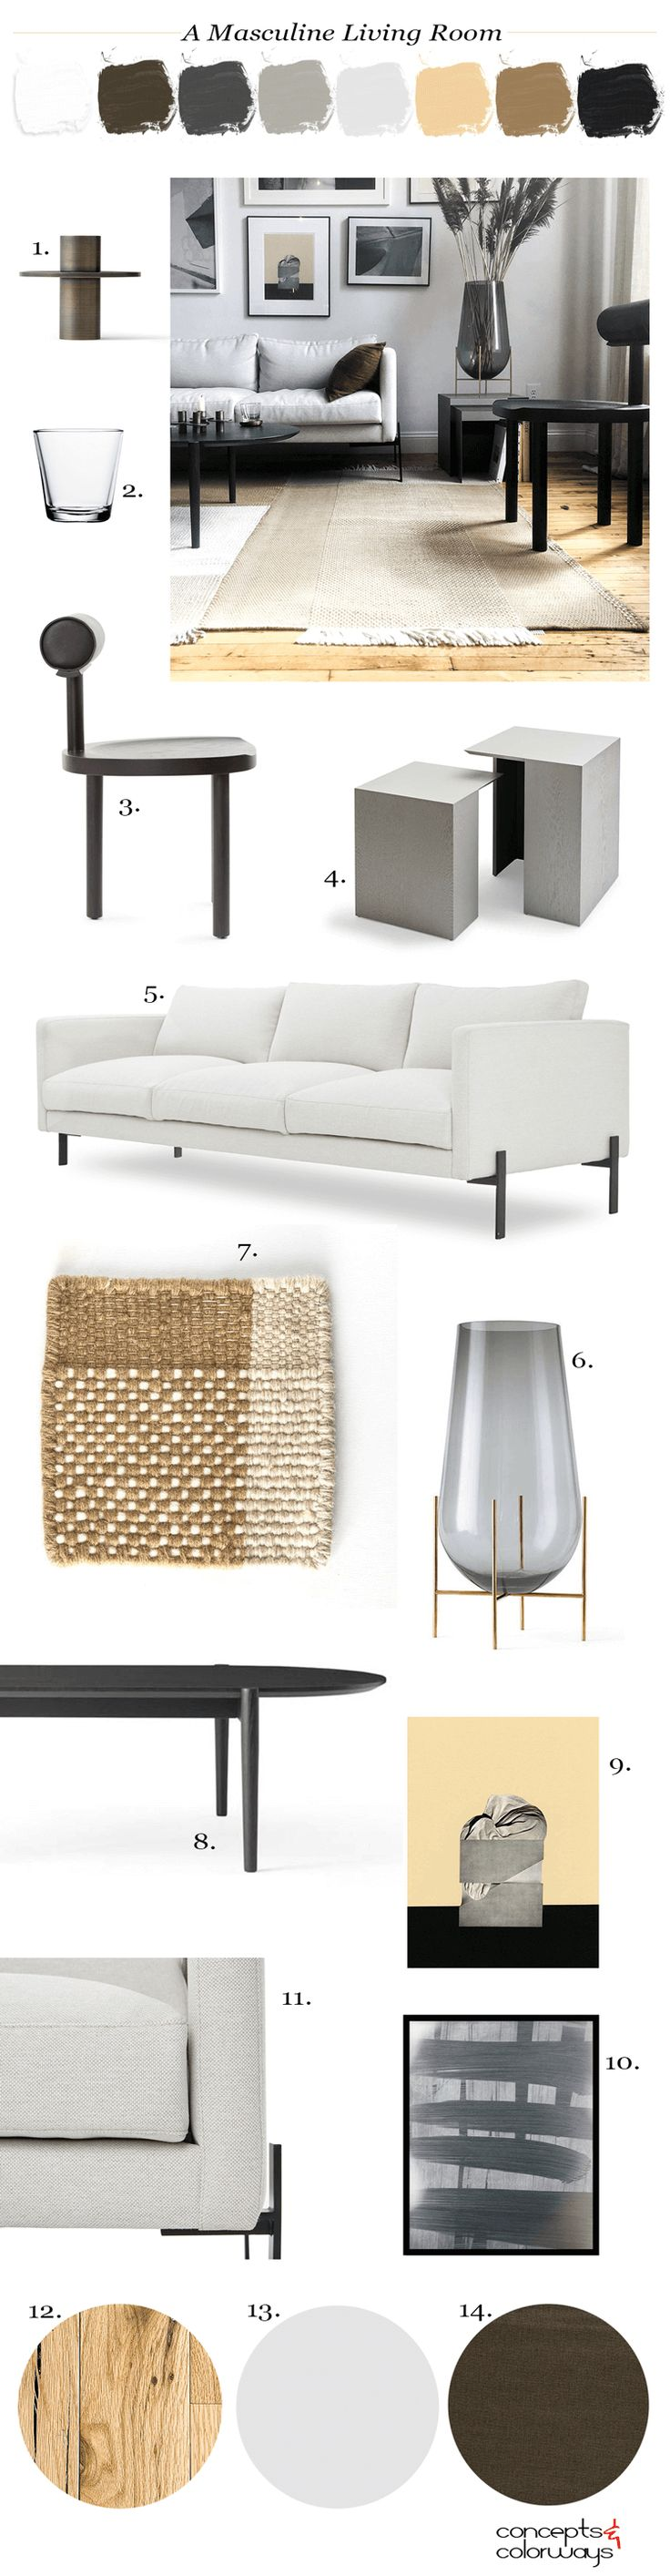 masculine living room, masculine style, trnk furniture, large glass vase, framed wall art, gray walls, masculine furniture, contemporary living room, contemporary furniture, modern furniture, modern white sofa, modern black dining chairs, modern dining chairs, modern side chair, rustic oak flooring, bronze pillows, black coffee table, dhurrie rugs, woven rug, light gray, black and white, ochre, honey oak, dark gray, bronze color